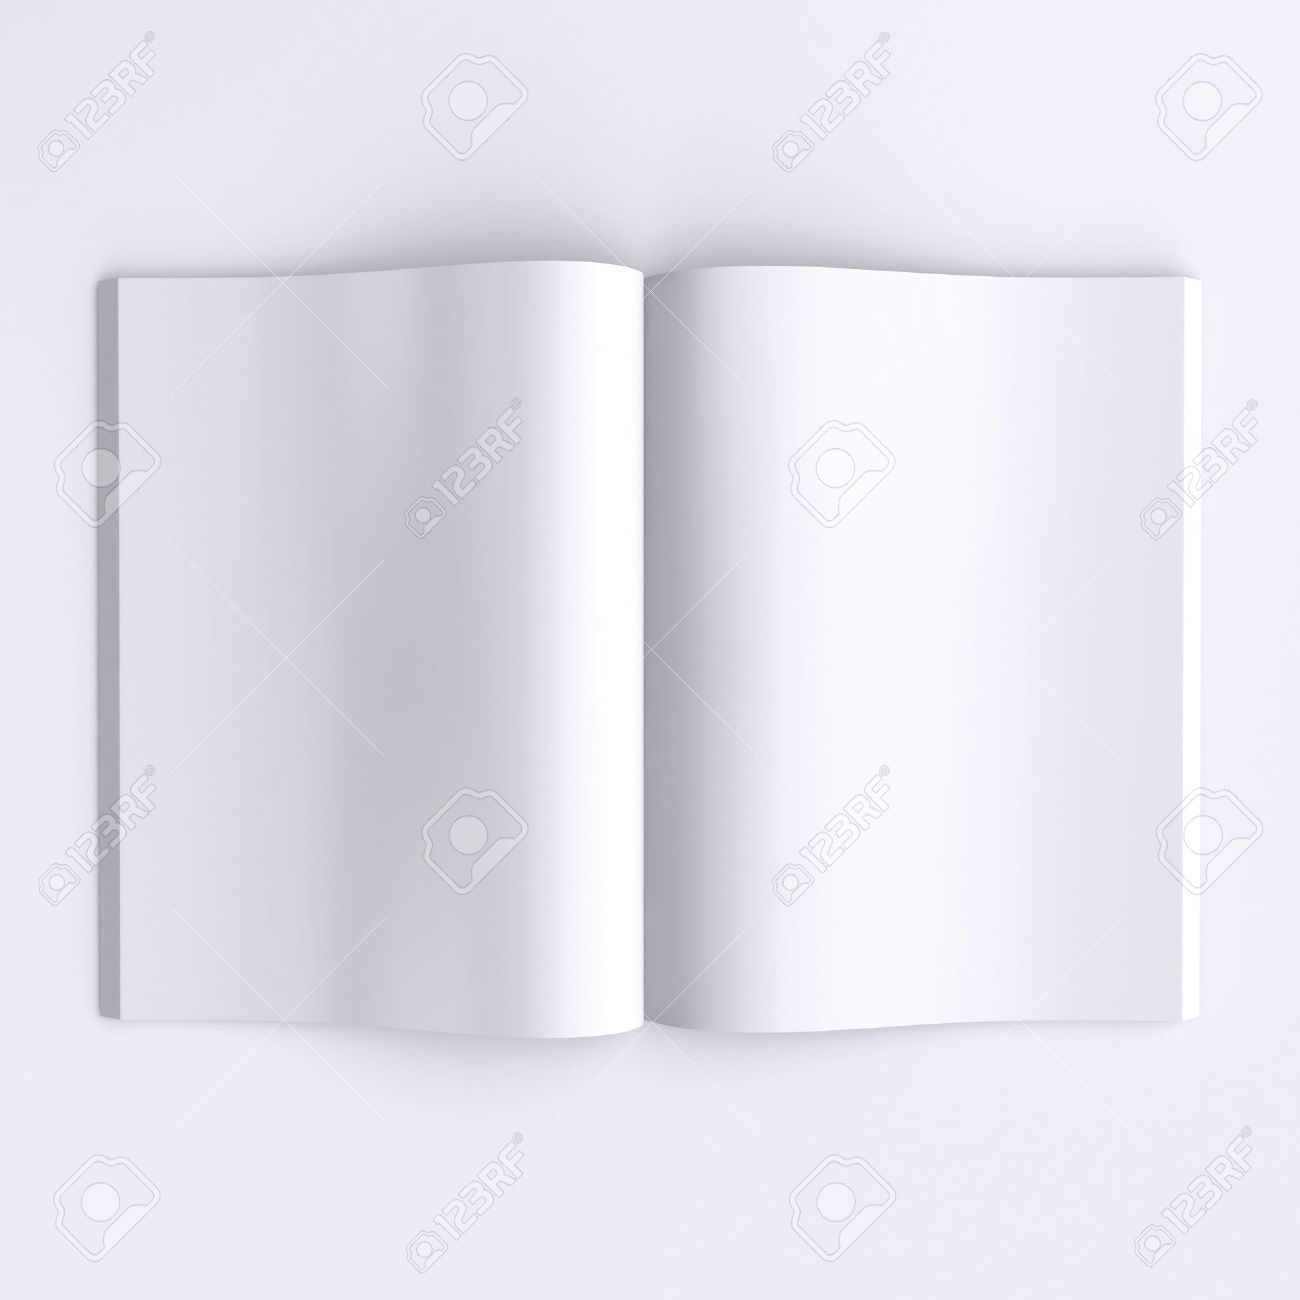 Template Blank Pages Of An Open Journal, Newspapers Or Books ...